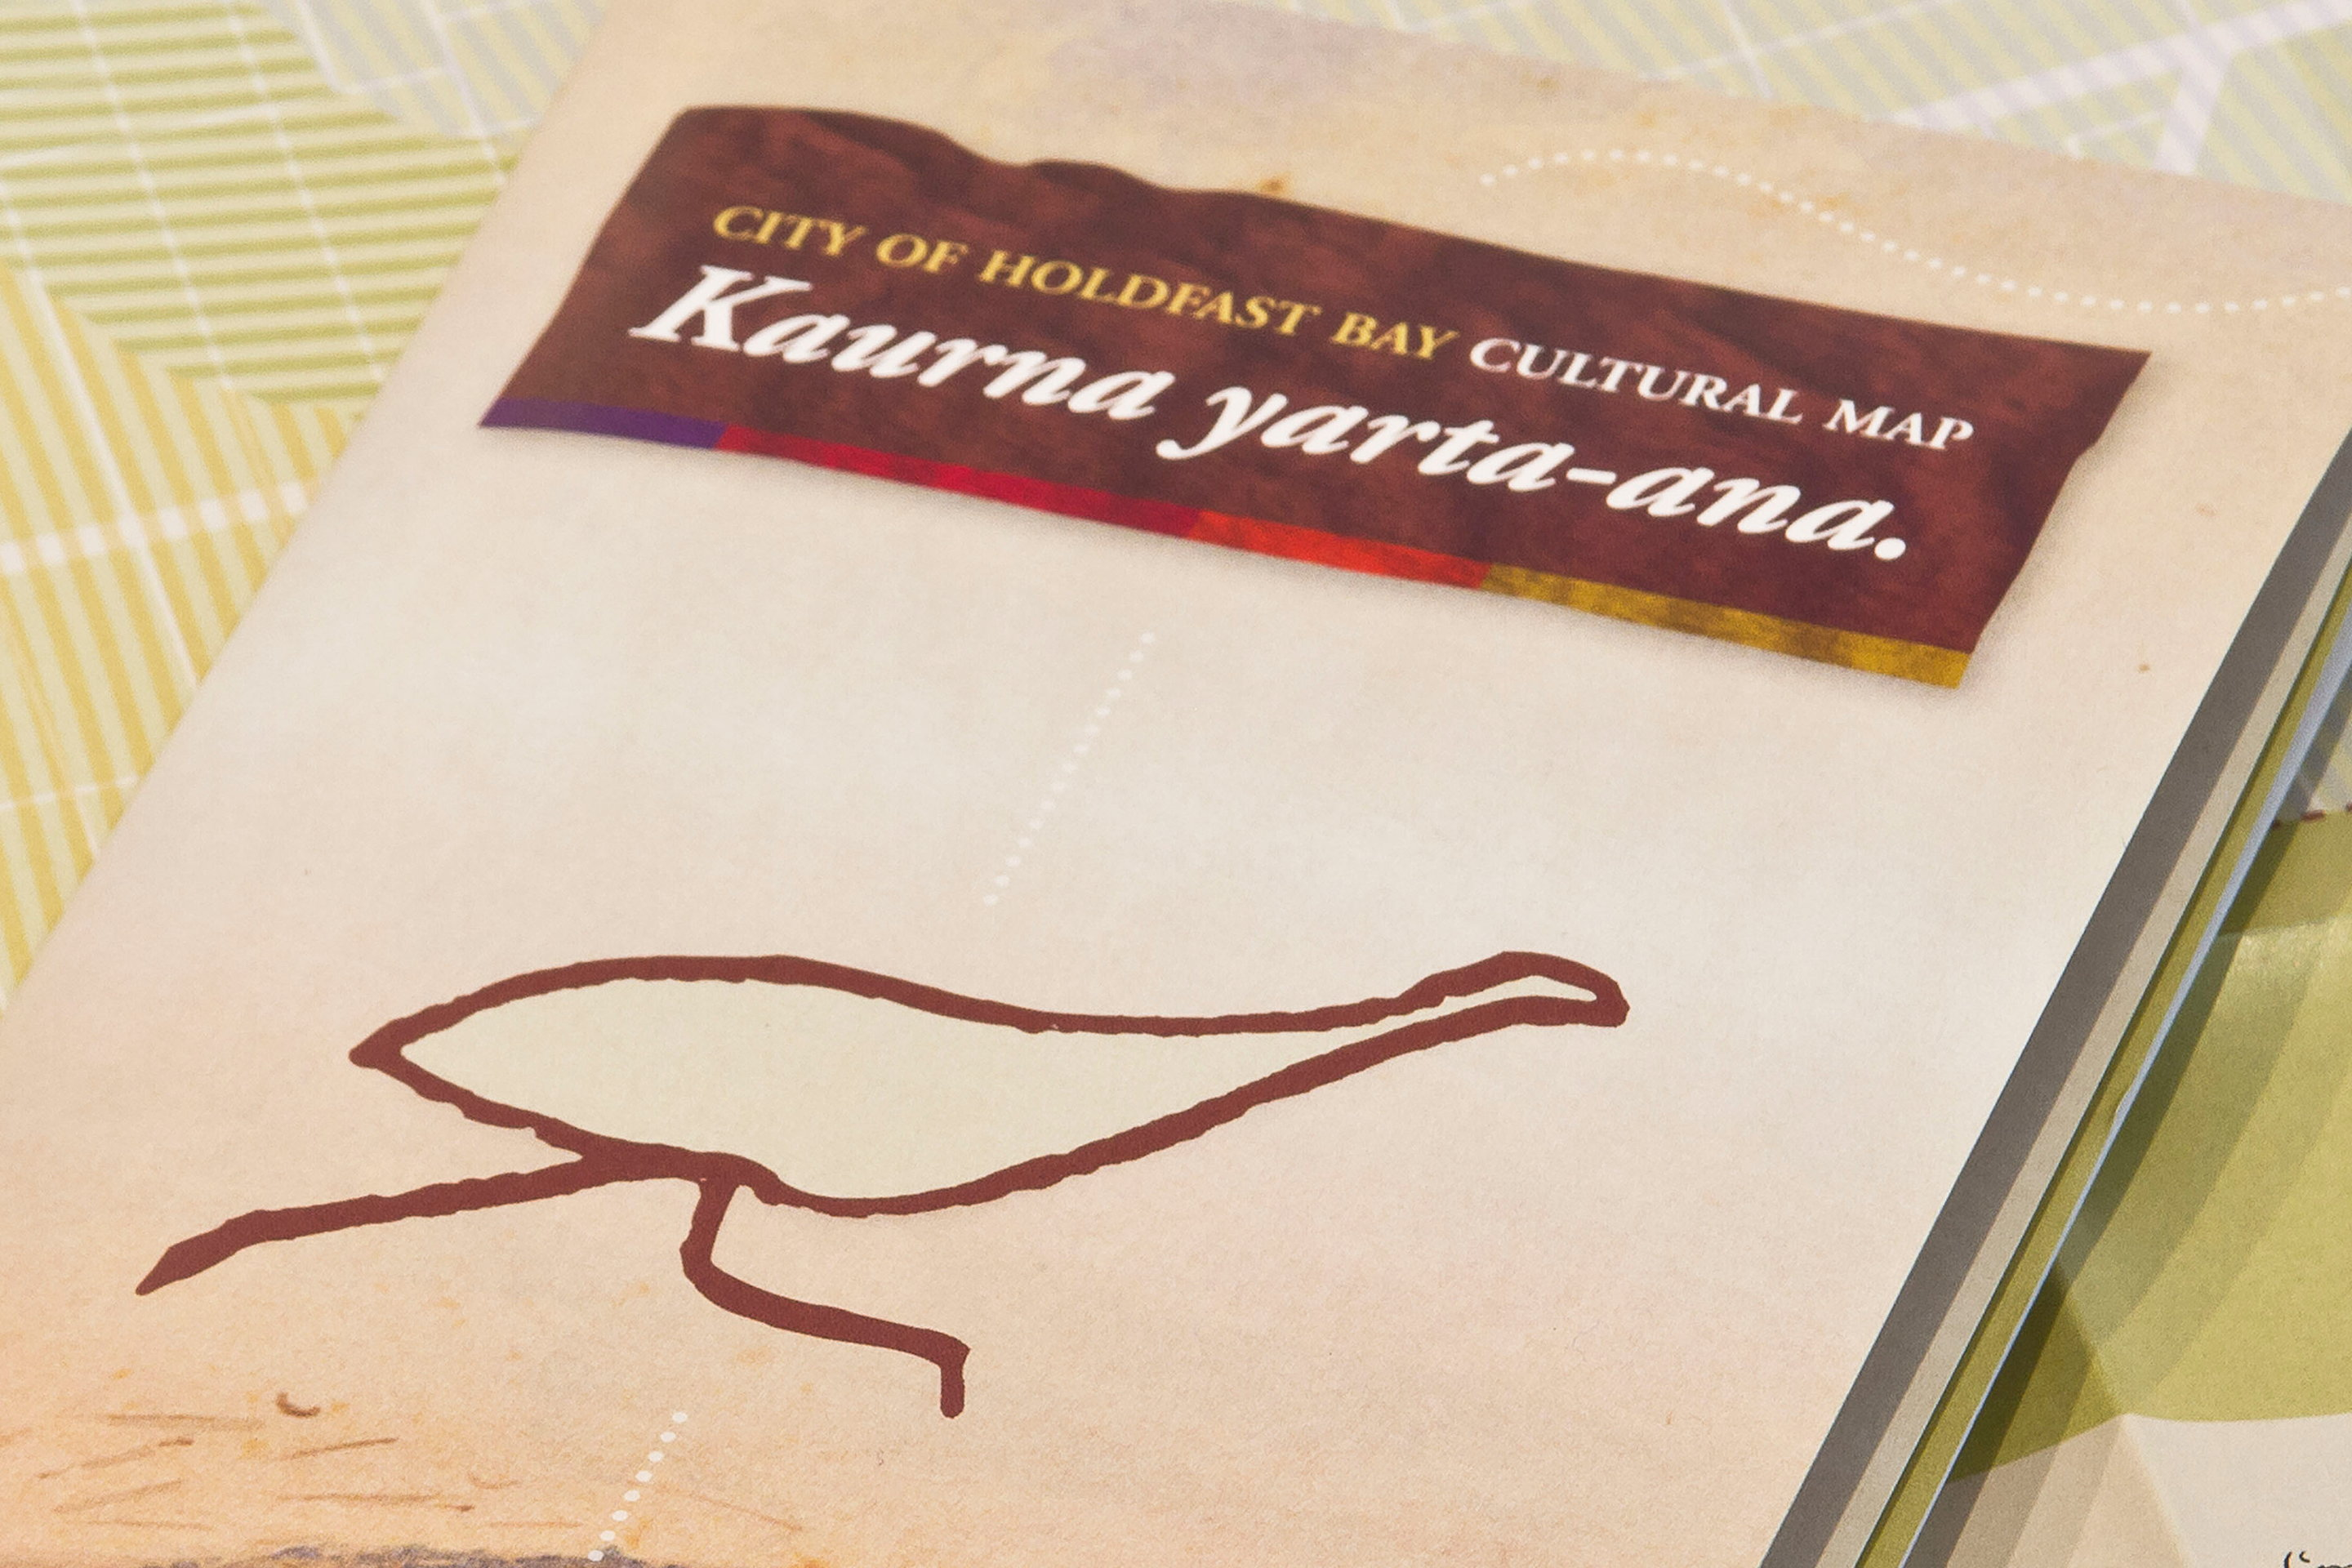 Kaurna Walking Guide